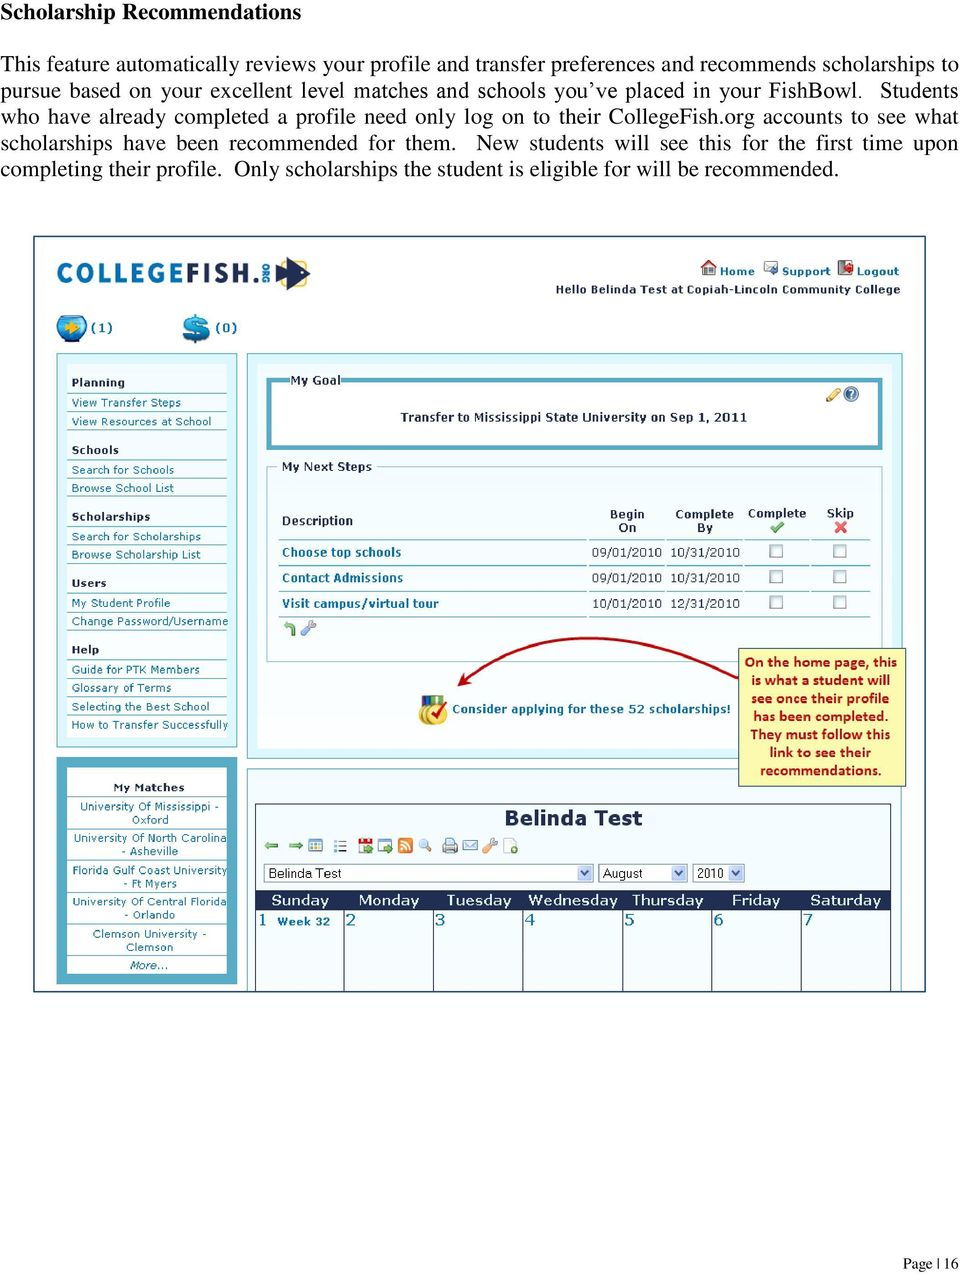 Students who have already completed a profile need only log on to their CollegeFish.